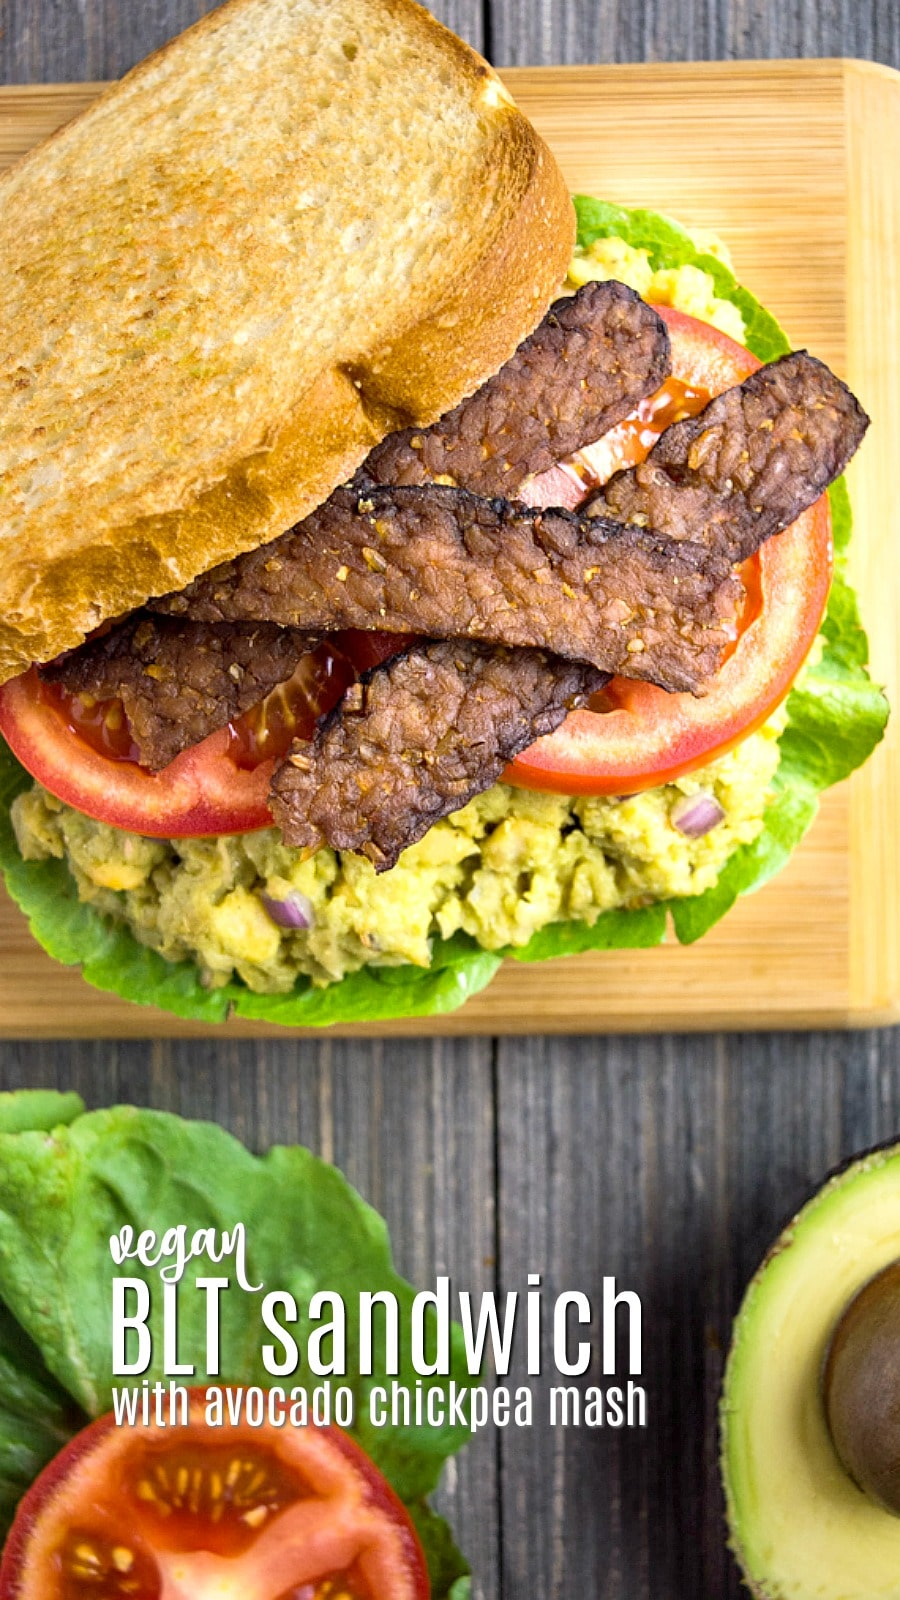 vegan BLT sandwich with avocado chickpea mash, tempeh bacon, and tomato slices on a cutting board.